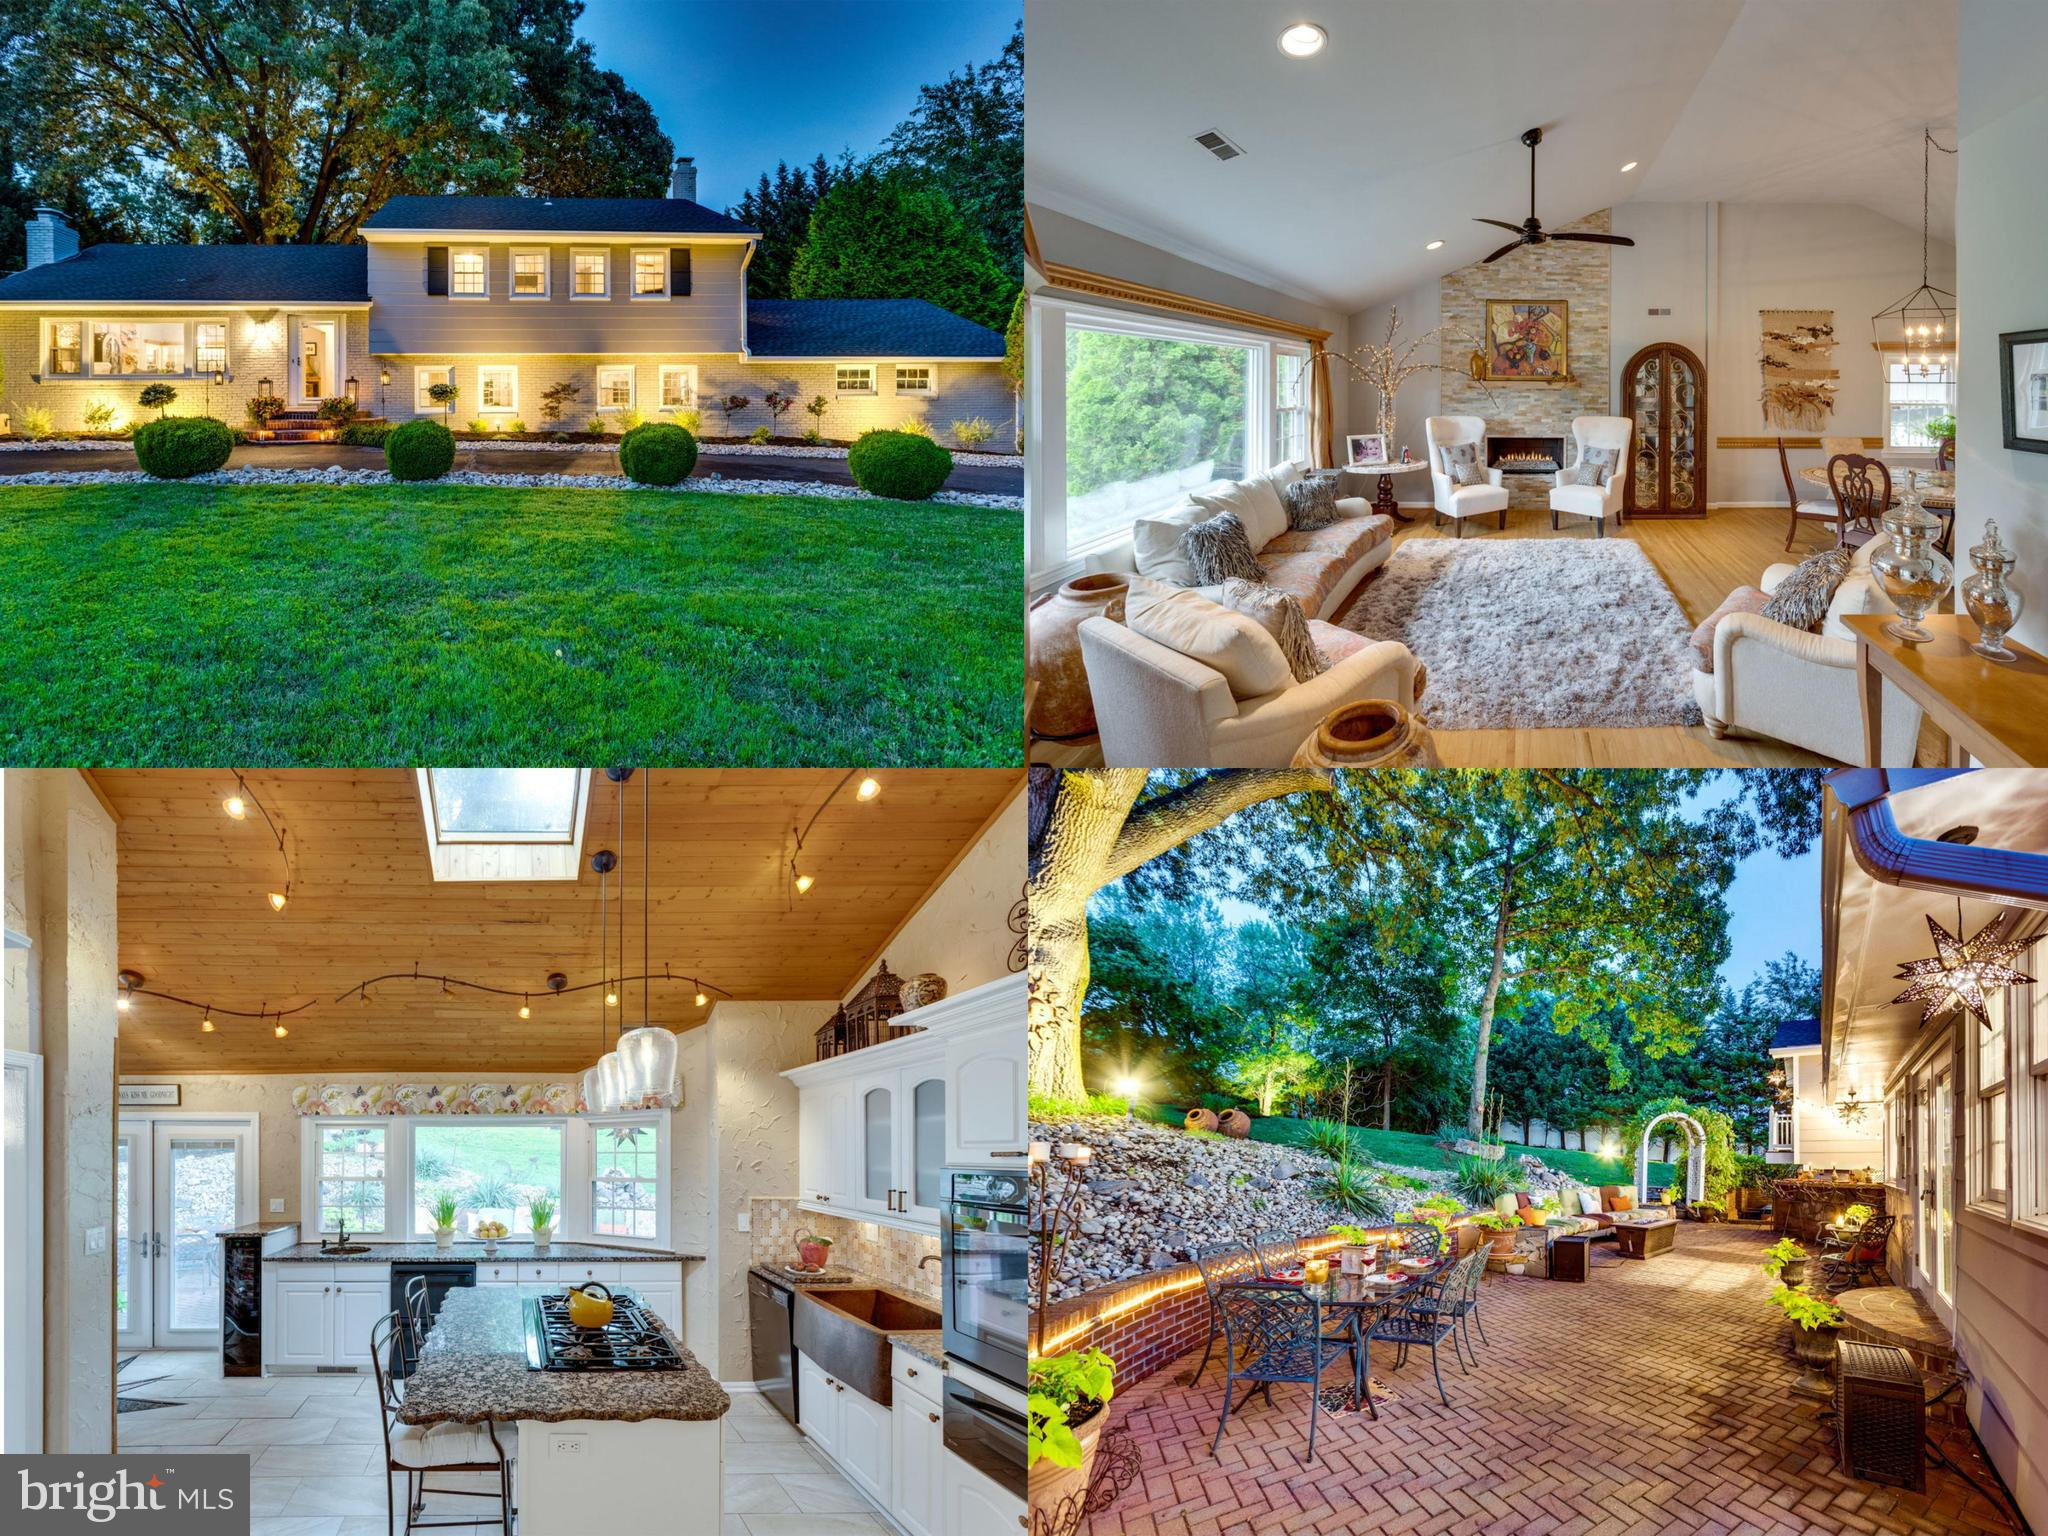 10 miles from Washington DC and 10 miles from Tysons, this stunning well designed 5 bedroom home is situated perfectly for easy access to I-395, Alexandria Old Town historical district, Arlington, Crystal City/National Landing (soon-to-be site of Amazon HQ2) & the Nation's Capital, not to mention being walking distance to one of the best high schools in the country, Thomas Jefferson High School for Science and Technologylocated minutes from 495, 395, easy access to within the wonderful hidden neighborhood of Pinecrest behind Pinecrest Golf Course, close to Green Springs Gardens, Shopping & Restaurants all close by. The back area has a spacious custom built brick patio outfitted with custom seating & an outdoor built-in kitchen/bar area. A huge secluded hot tub is the perfect spot for unwinding after a long day. Beautifully lit up at night the ambiance is wonderful and relaxing, Simply put, this house is INCREDIBLE for entertaining. Inside you will find 5 bedrooms, 3 full baths, an eat-in gourmet kitchen with vaulted ceilings. A wall of windows allows for a perfect view of the gorgeous patio and to the Wisteria covered archway that leads to the amazing backyard. The home features 3 living spaces, a formal living room with huge windows overlooks the expansive front yard of the home. This room has been redesigned to include a raised stacked stone fireplace with a gas insert for easy comfort and warmth. The large formal dining area abuts the living room and allows for plenty of room for entertaining. The second living space has a cozy woodburning fireplace, an updated whitewashed brick wall so you can have the best of both worlds. French doors open up to the backyard for easy access to the hot tub and the outdoor kitchen area. The third living space is a wonderful retreat for guests and company. It is roomy and can host a large sectional and has tons of storage space. The 5th bedroom is off this room allowing for privacy for guests and a nice quiet spot for relaxing. Th